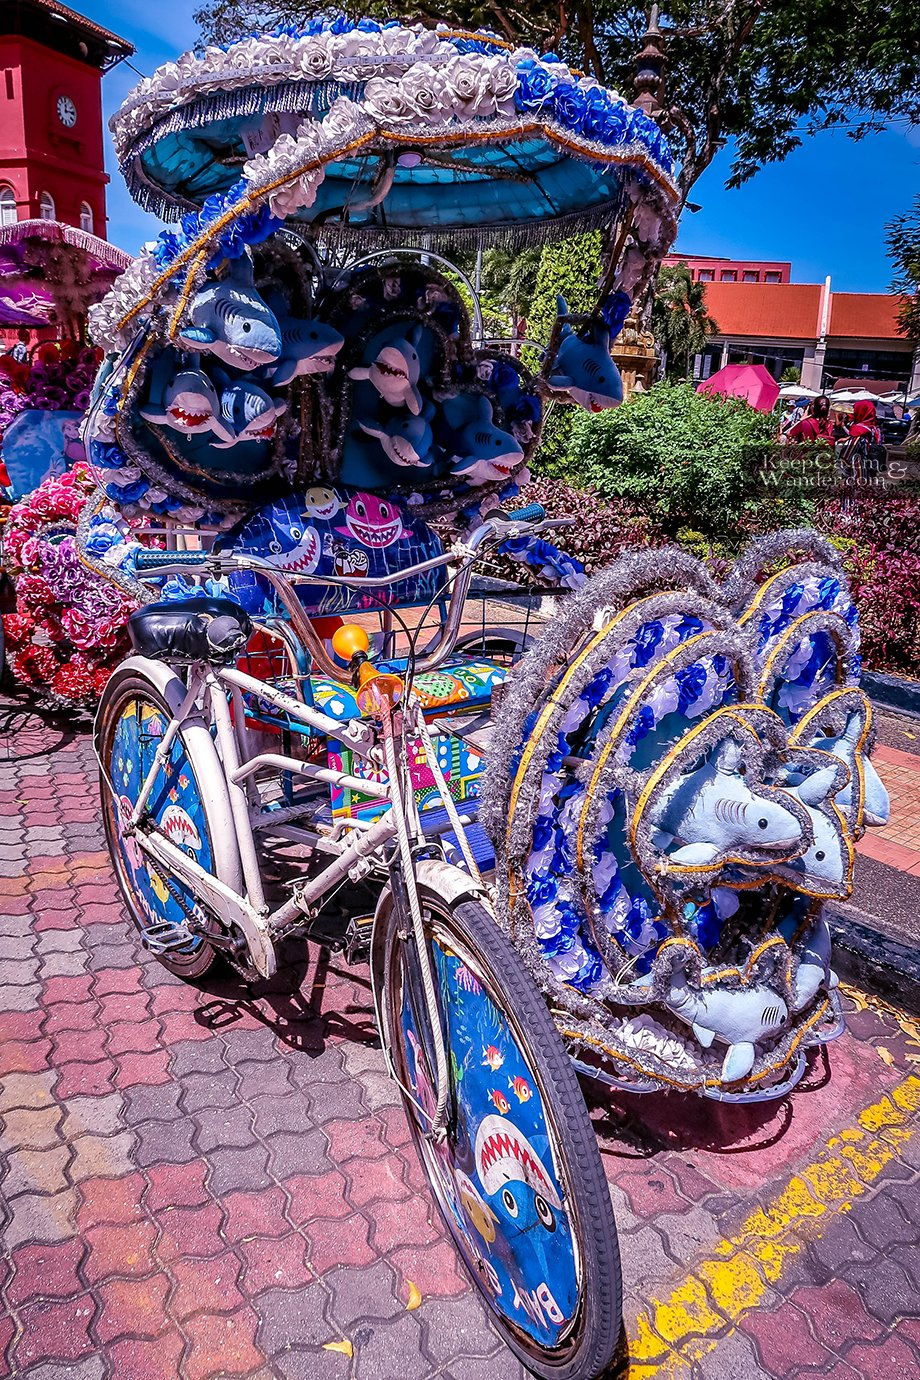 Beautiful Tuktuks in Melacca.